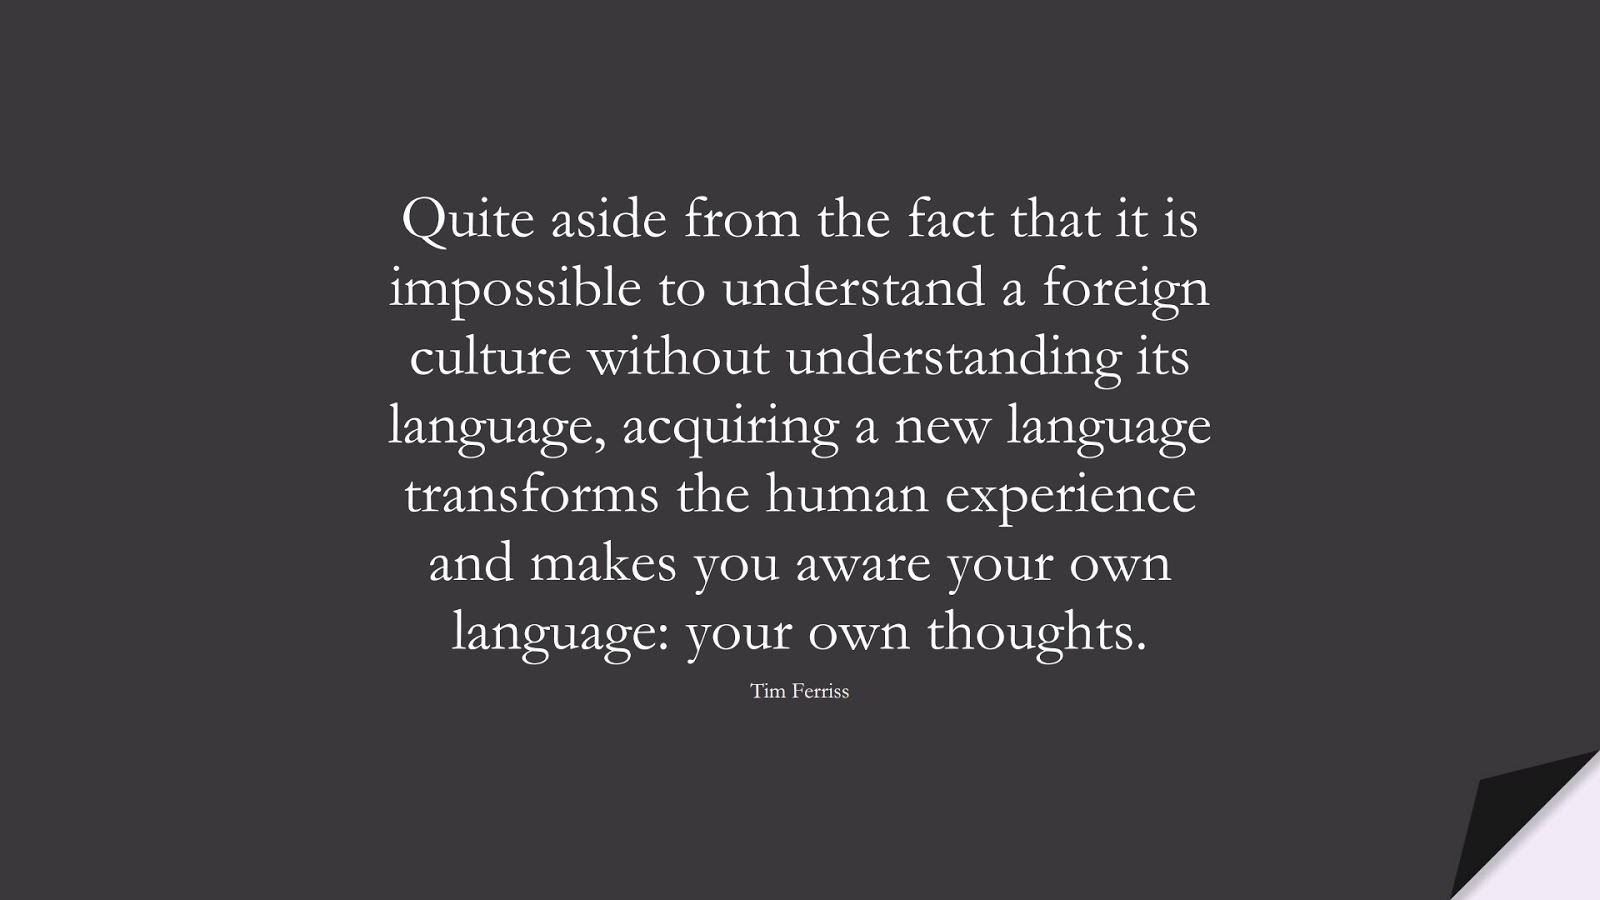 Quite aside from the fact that it is impossible to understand a foreign culture without understanding its language, acquiring a new language transforms the human experience and makes you aware your own language: your own thoughts. (Tim Ferriss);  #TimFerrissQuotes